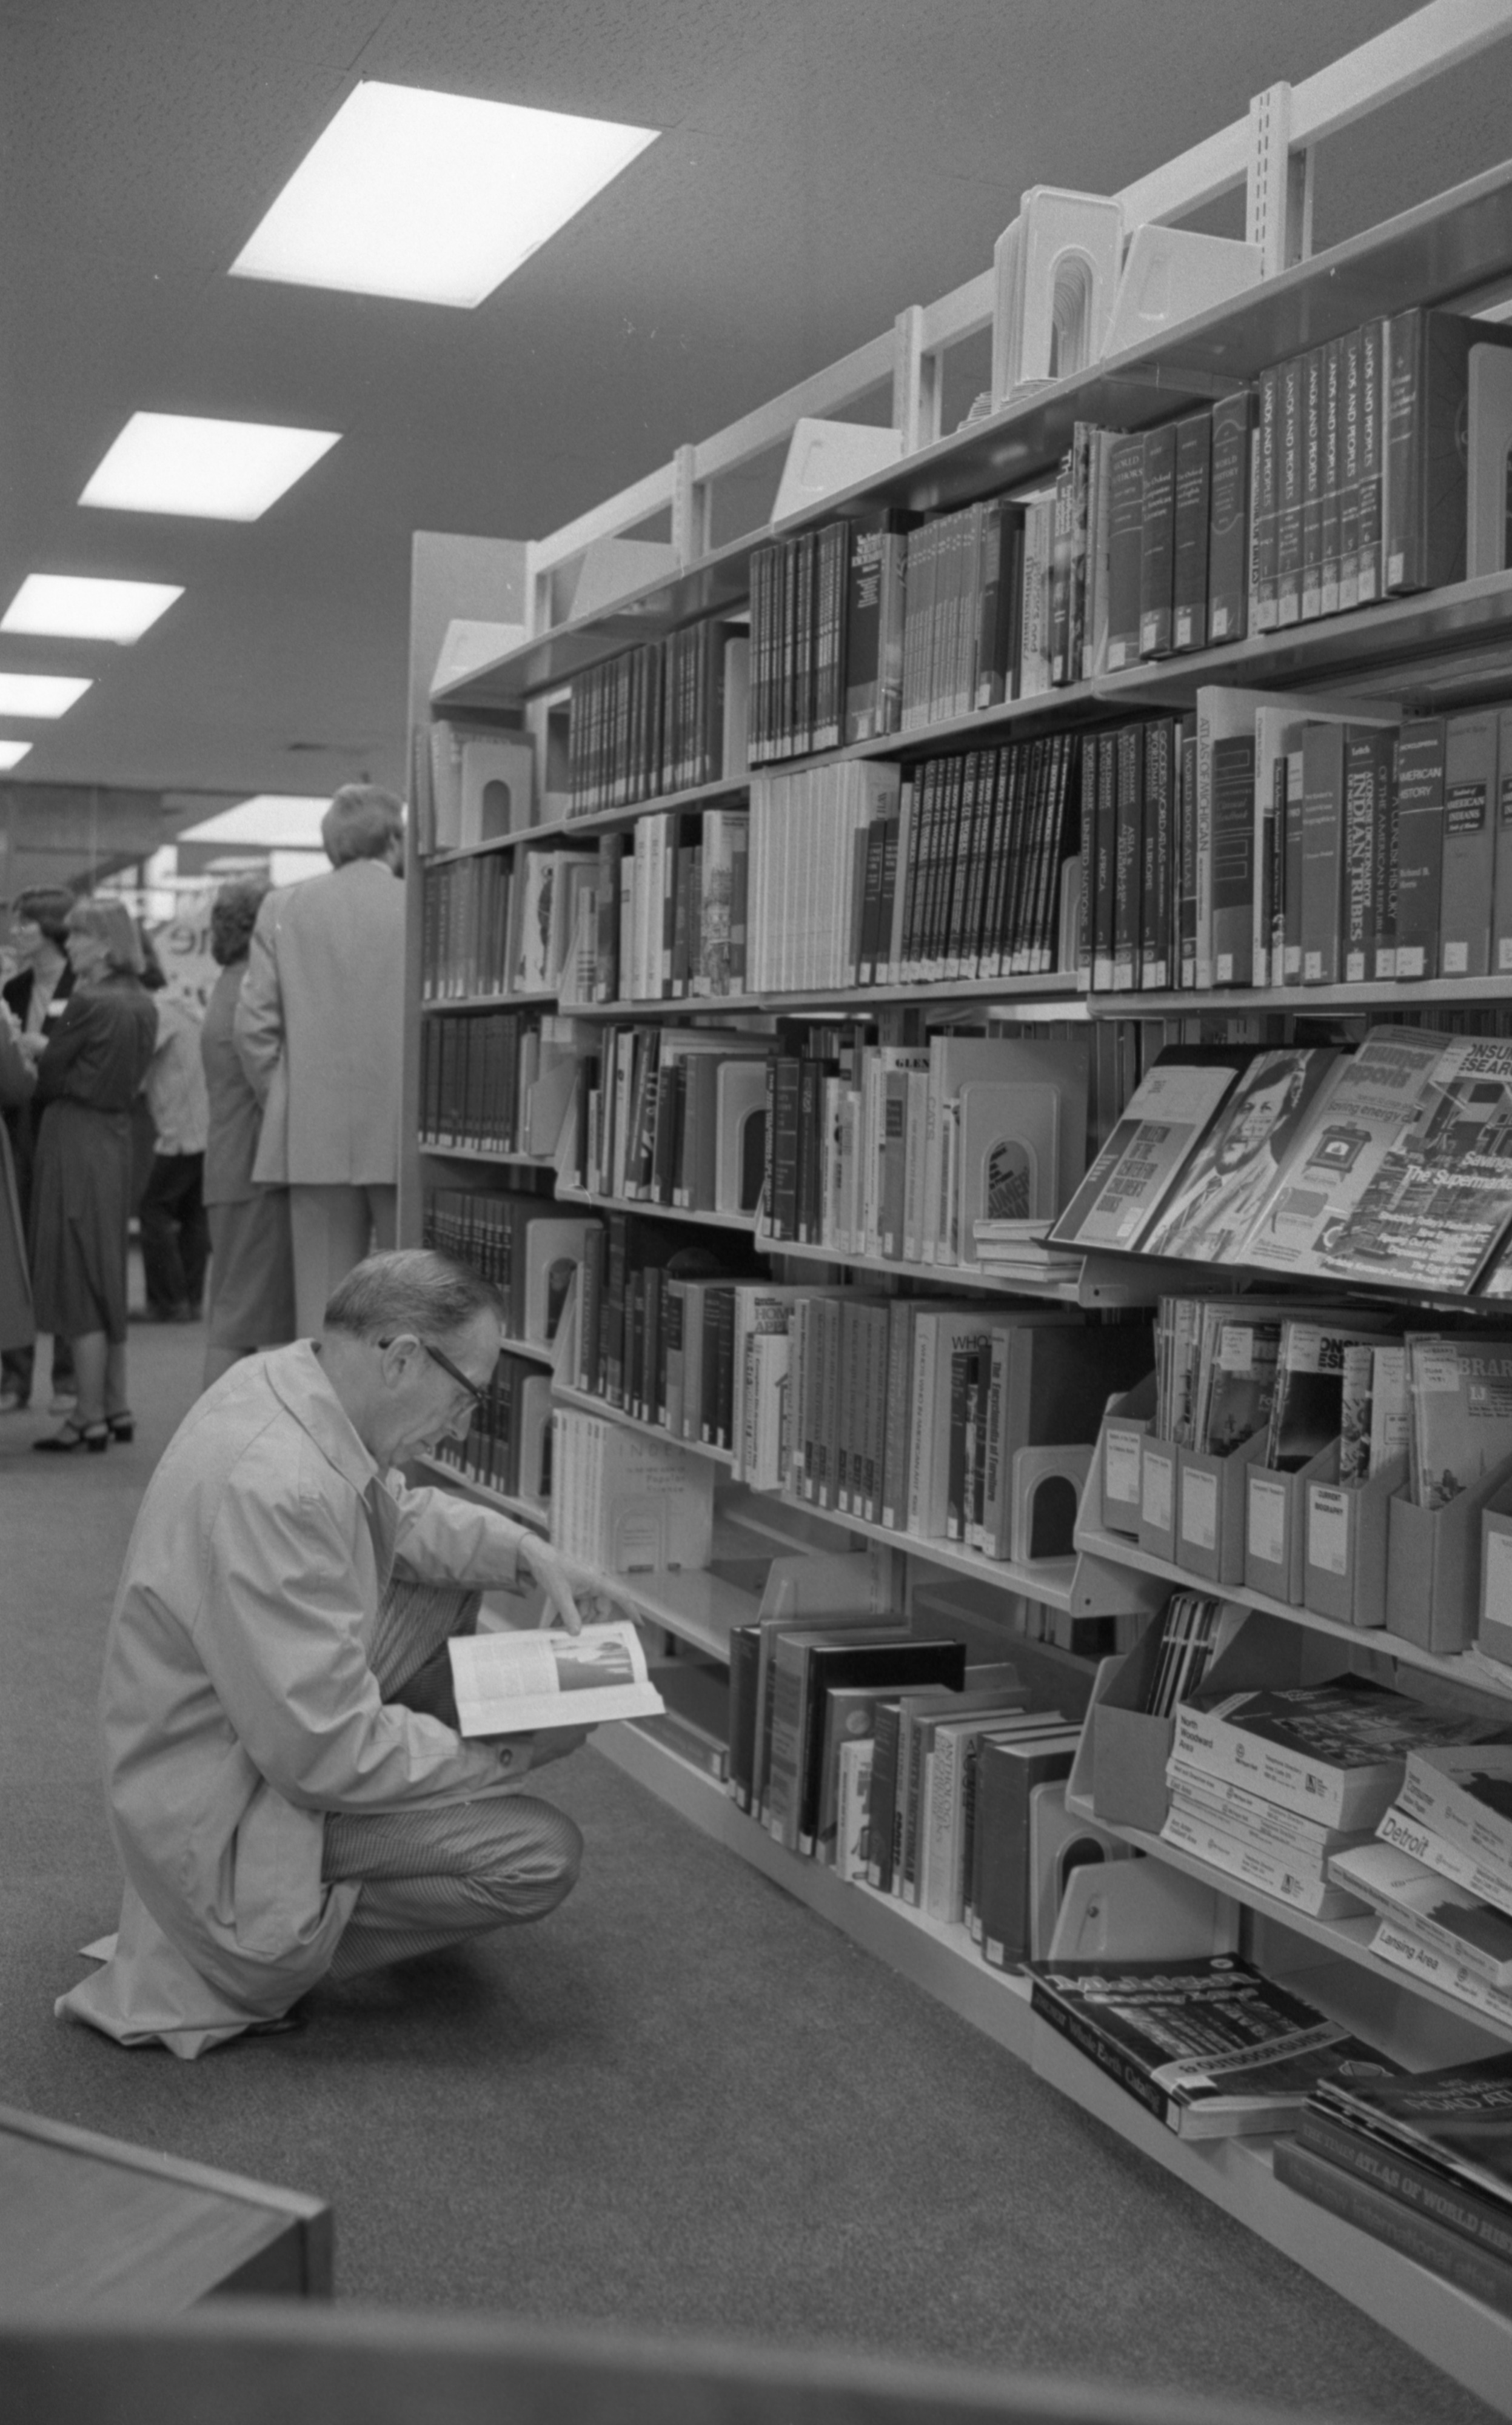 Forest Alter Browses Books At The Grand Opening Of The New Northeast Branch Of The Ann Arbor Public Library, October 1981 image